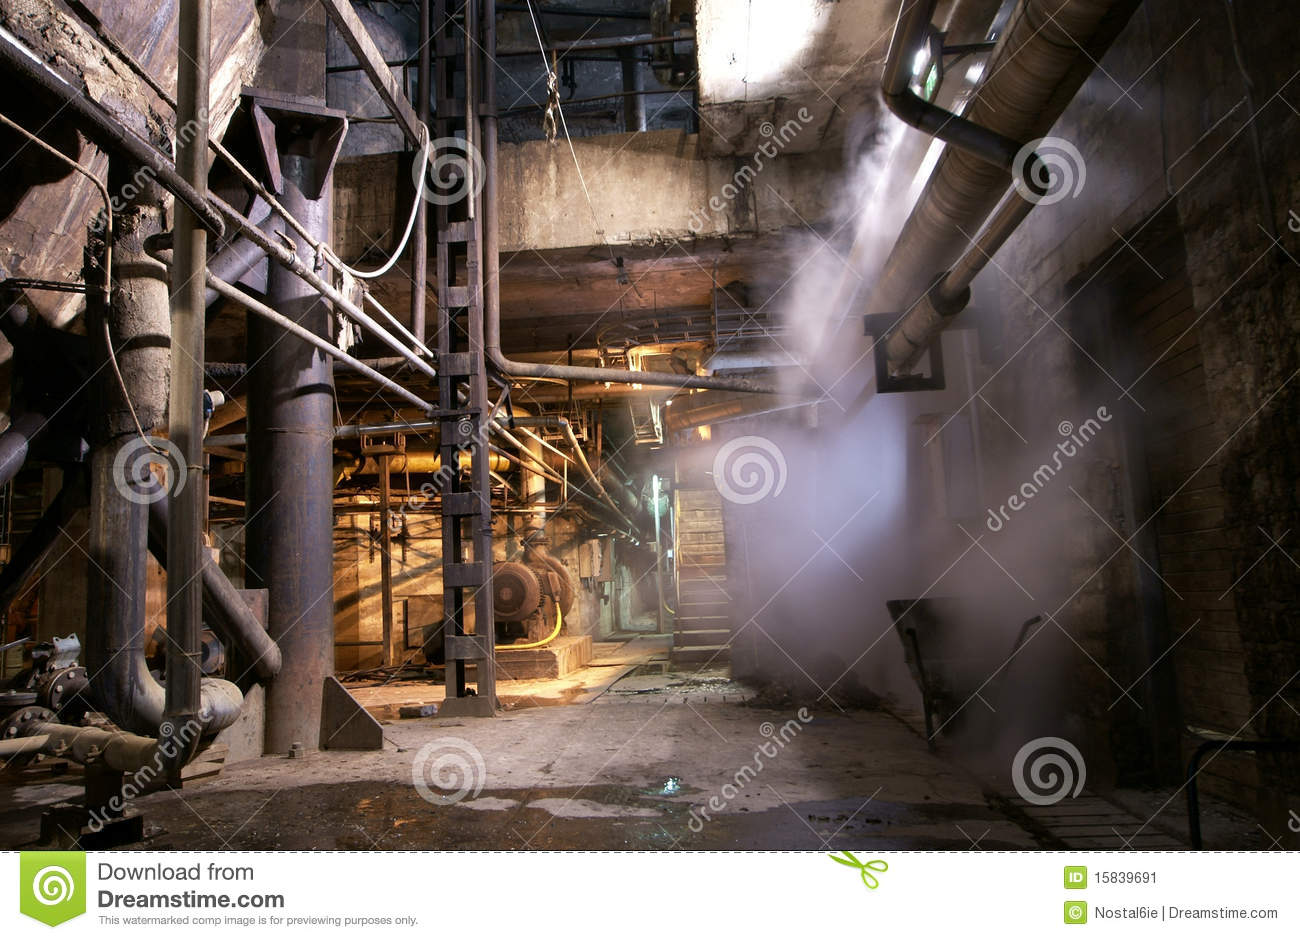 Old abandoned factory steam pipe